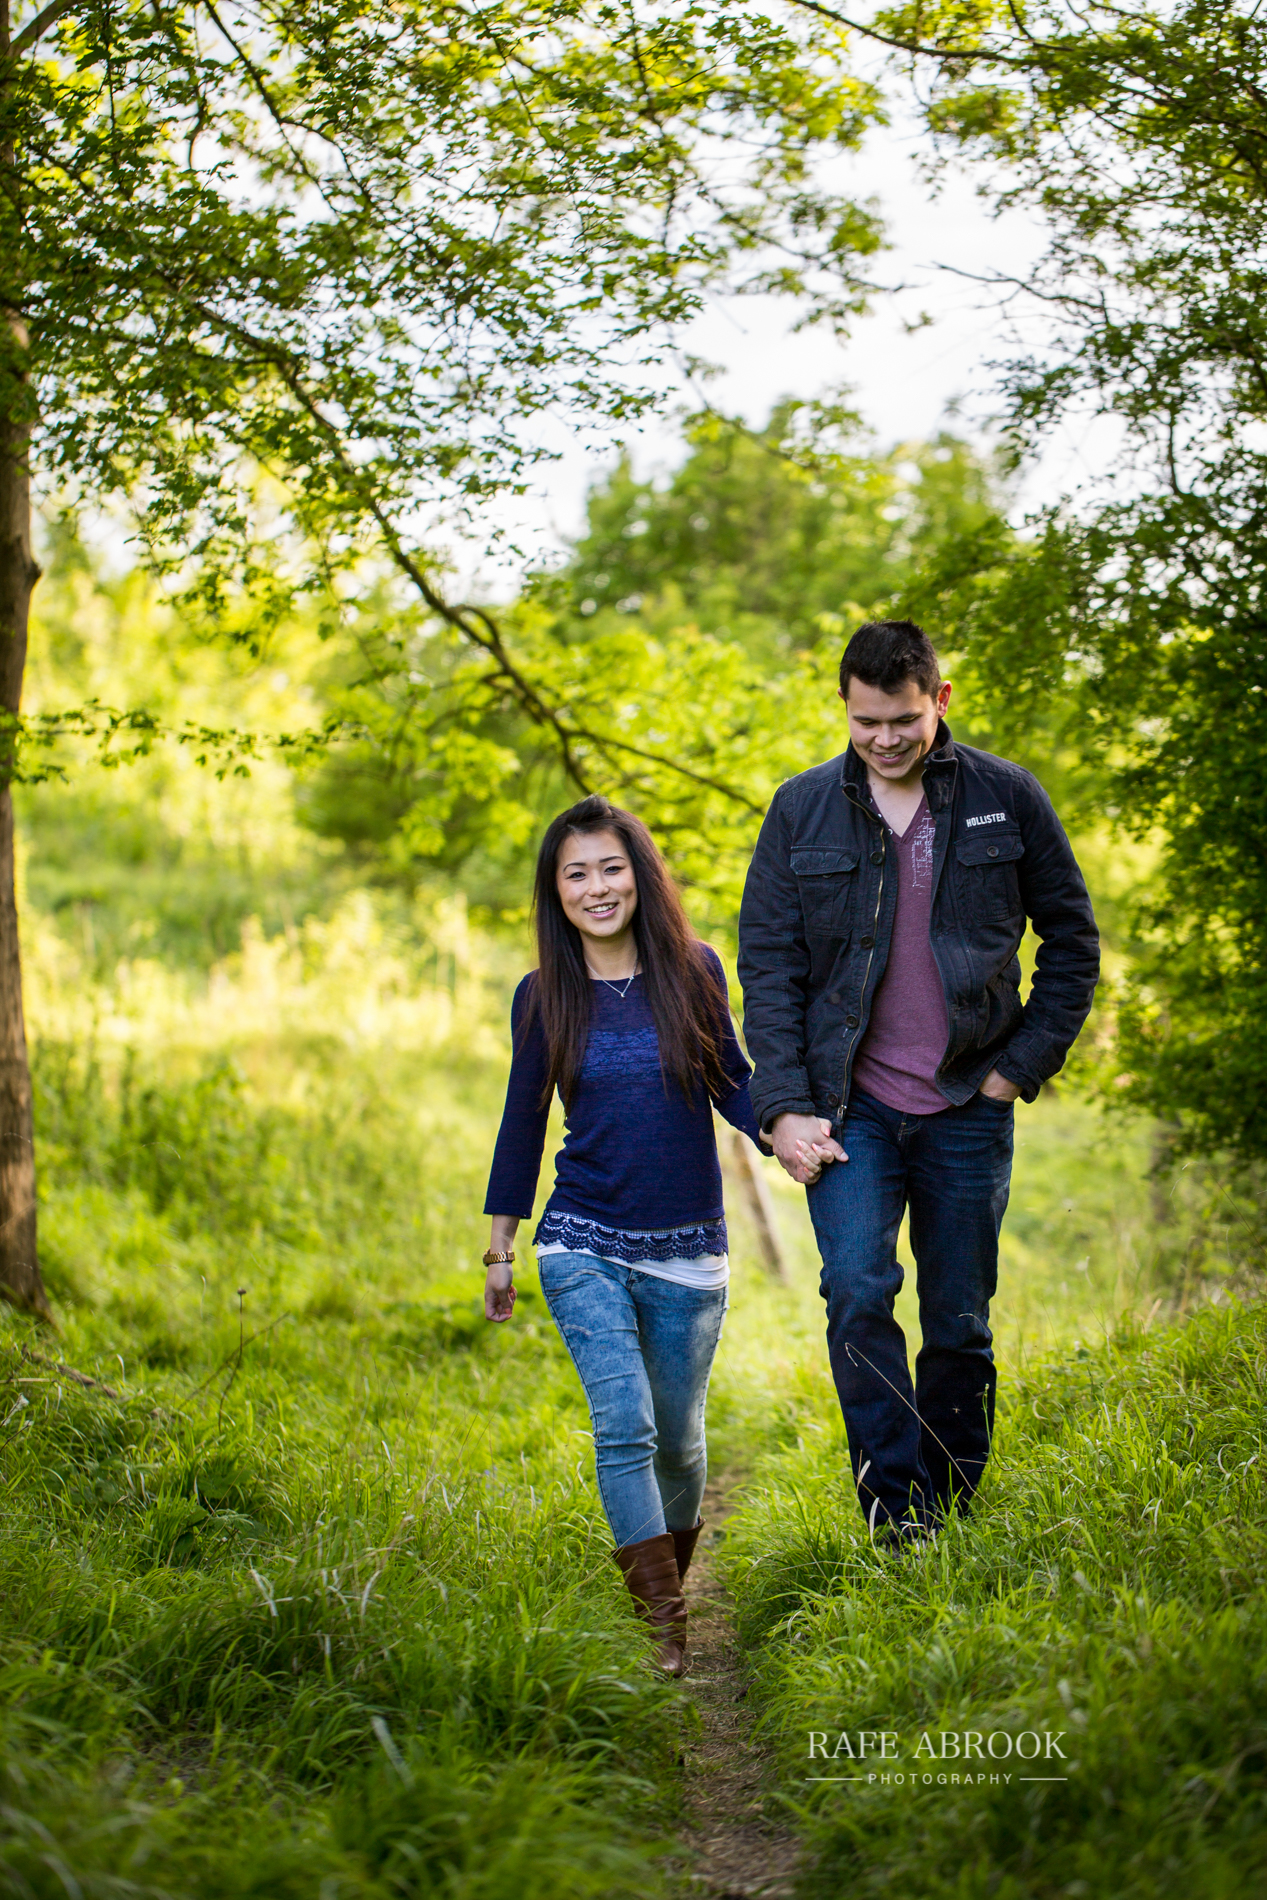 kerry & will engagement shoot totternhoe knolls dunstable bedfordshire-1006.jpg